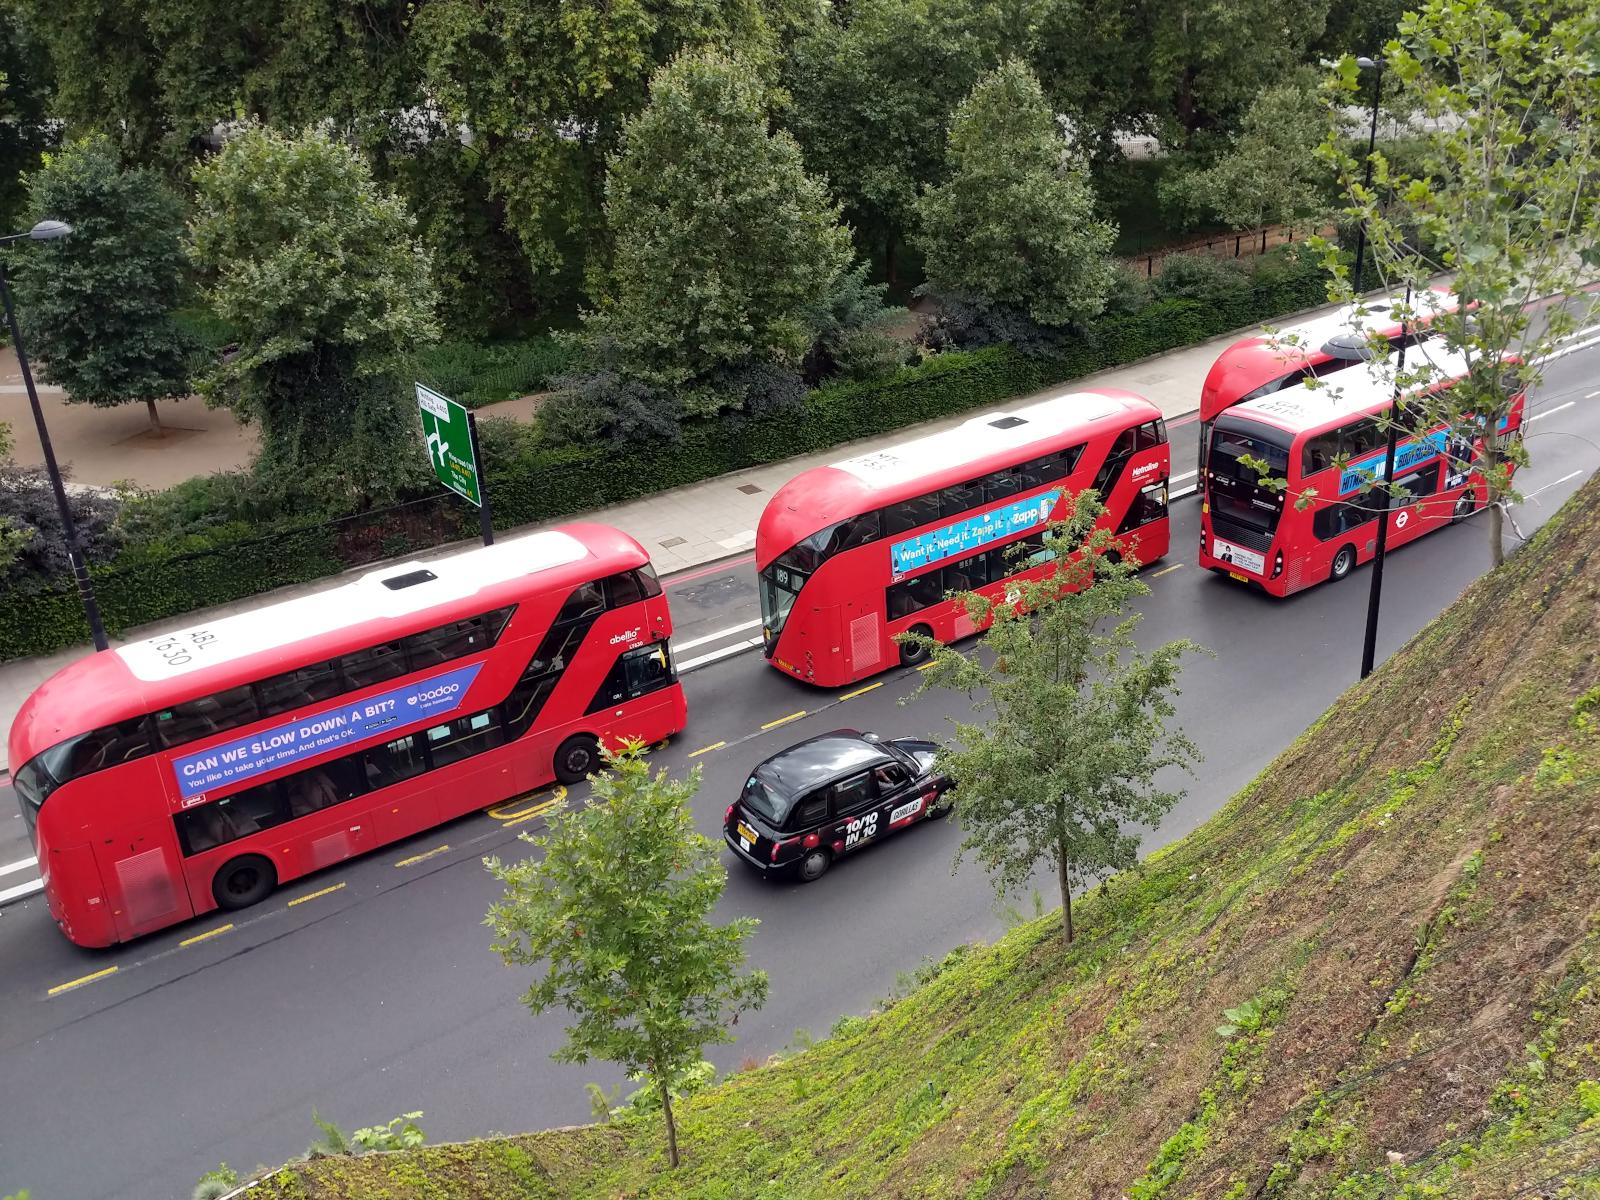 Looking down on buses and a taxi on the road, with the Mound in the foreground, and Hyde Park in the background